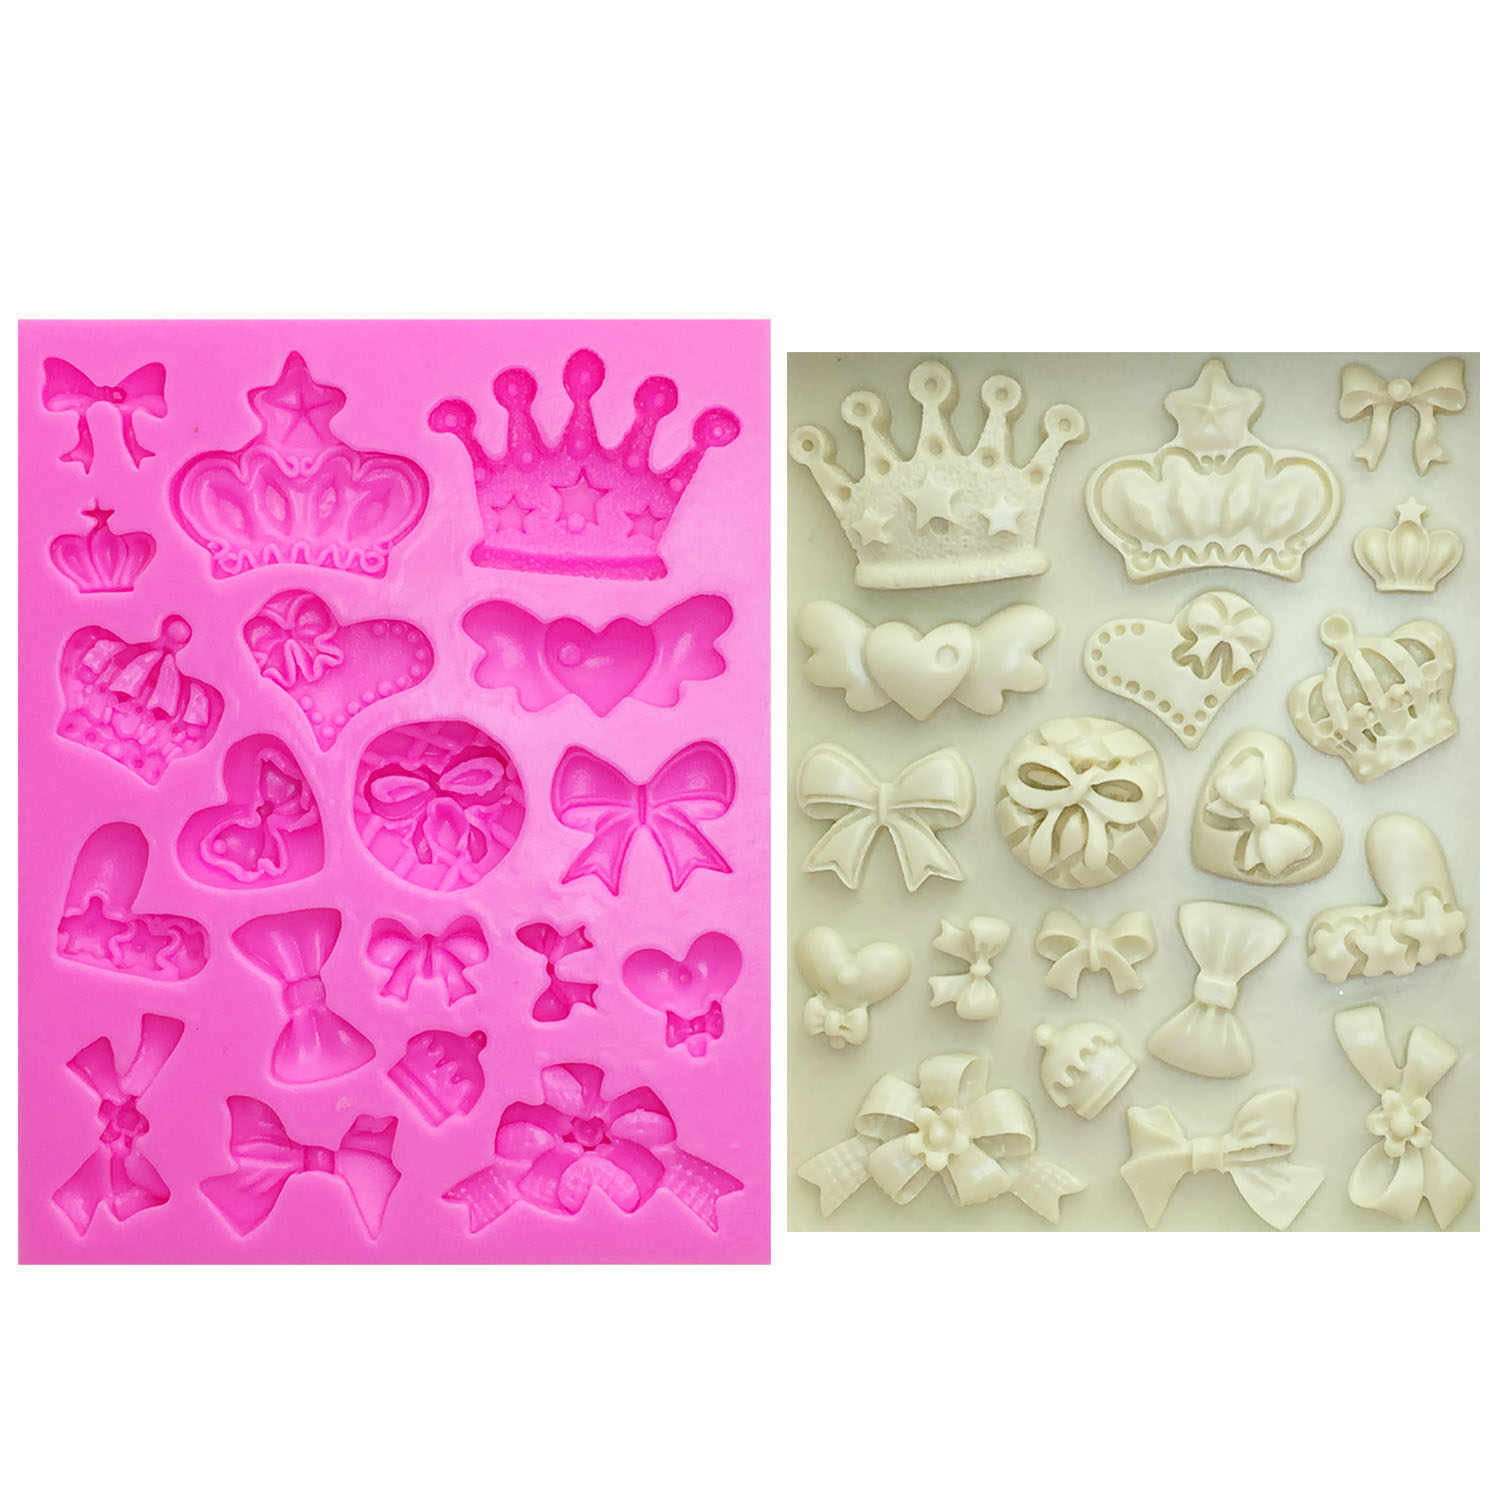 M0226 Cartoon Crown & Bow Tie Silicone Fondant Cake Mold Cupcake Jelly Candy Chocolate cake Decoration Baking Tool Moulds